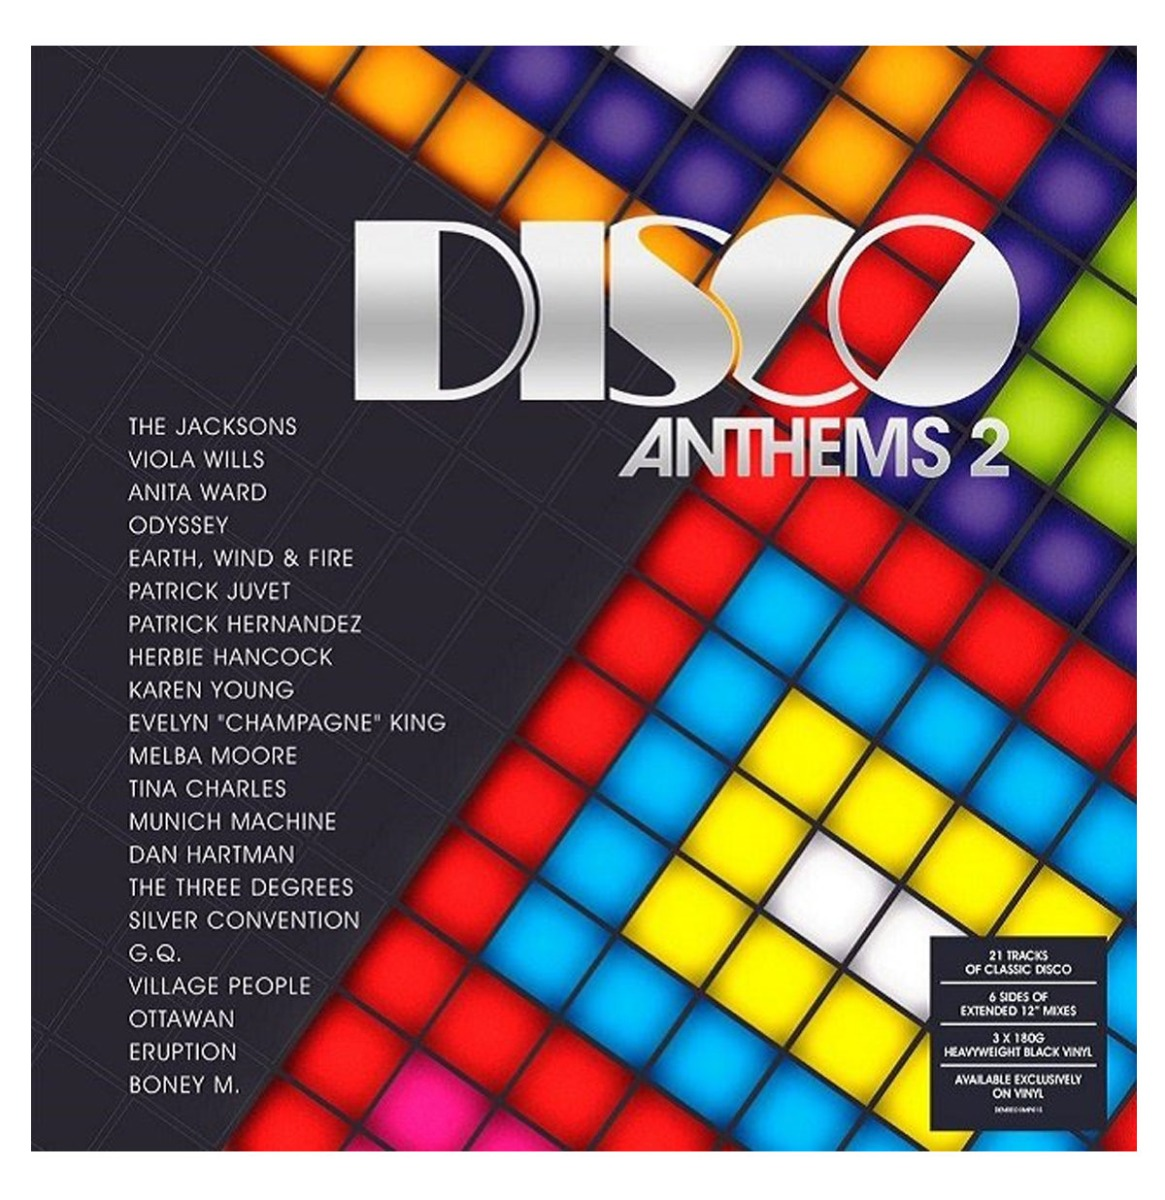 Various Artists - Disco Anthems 2 - 21 Tracks of Classic Disco - 3LP